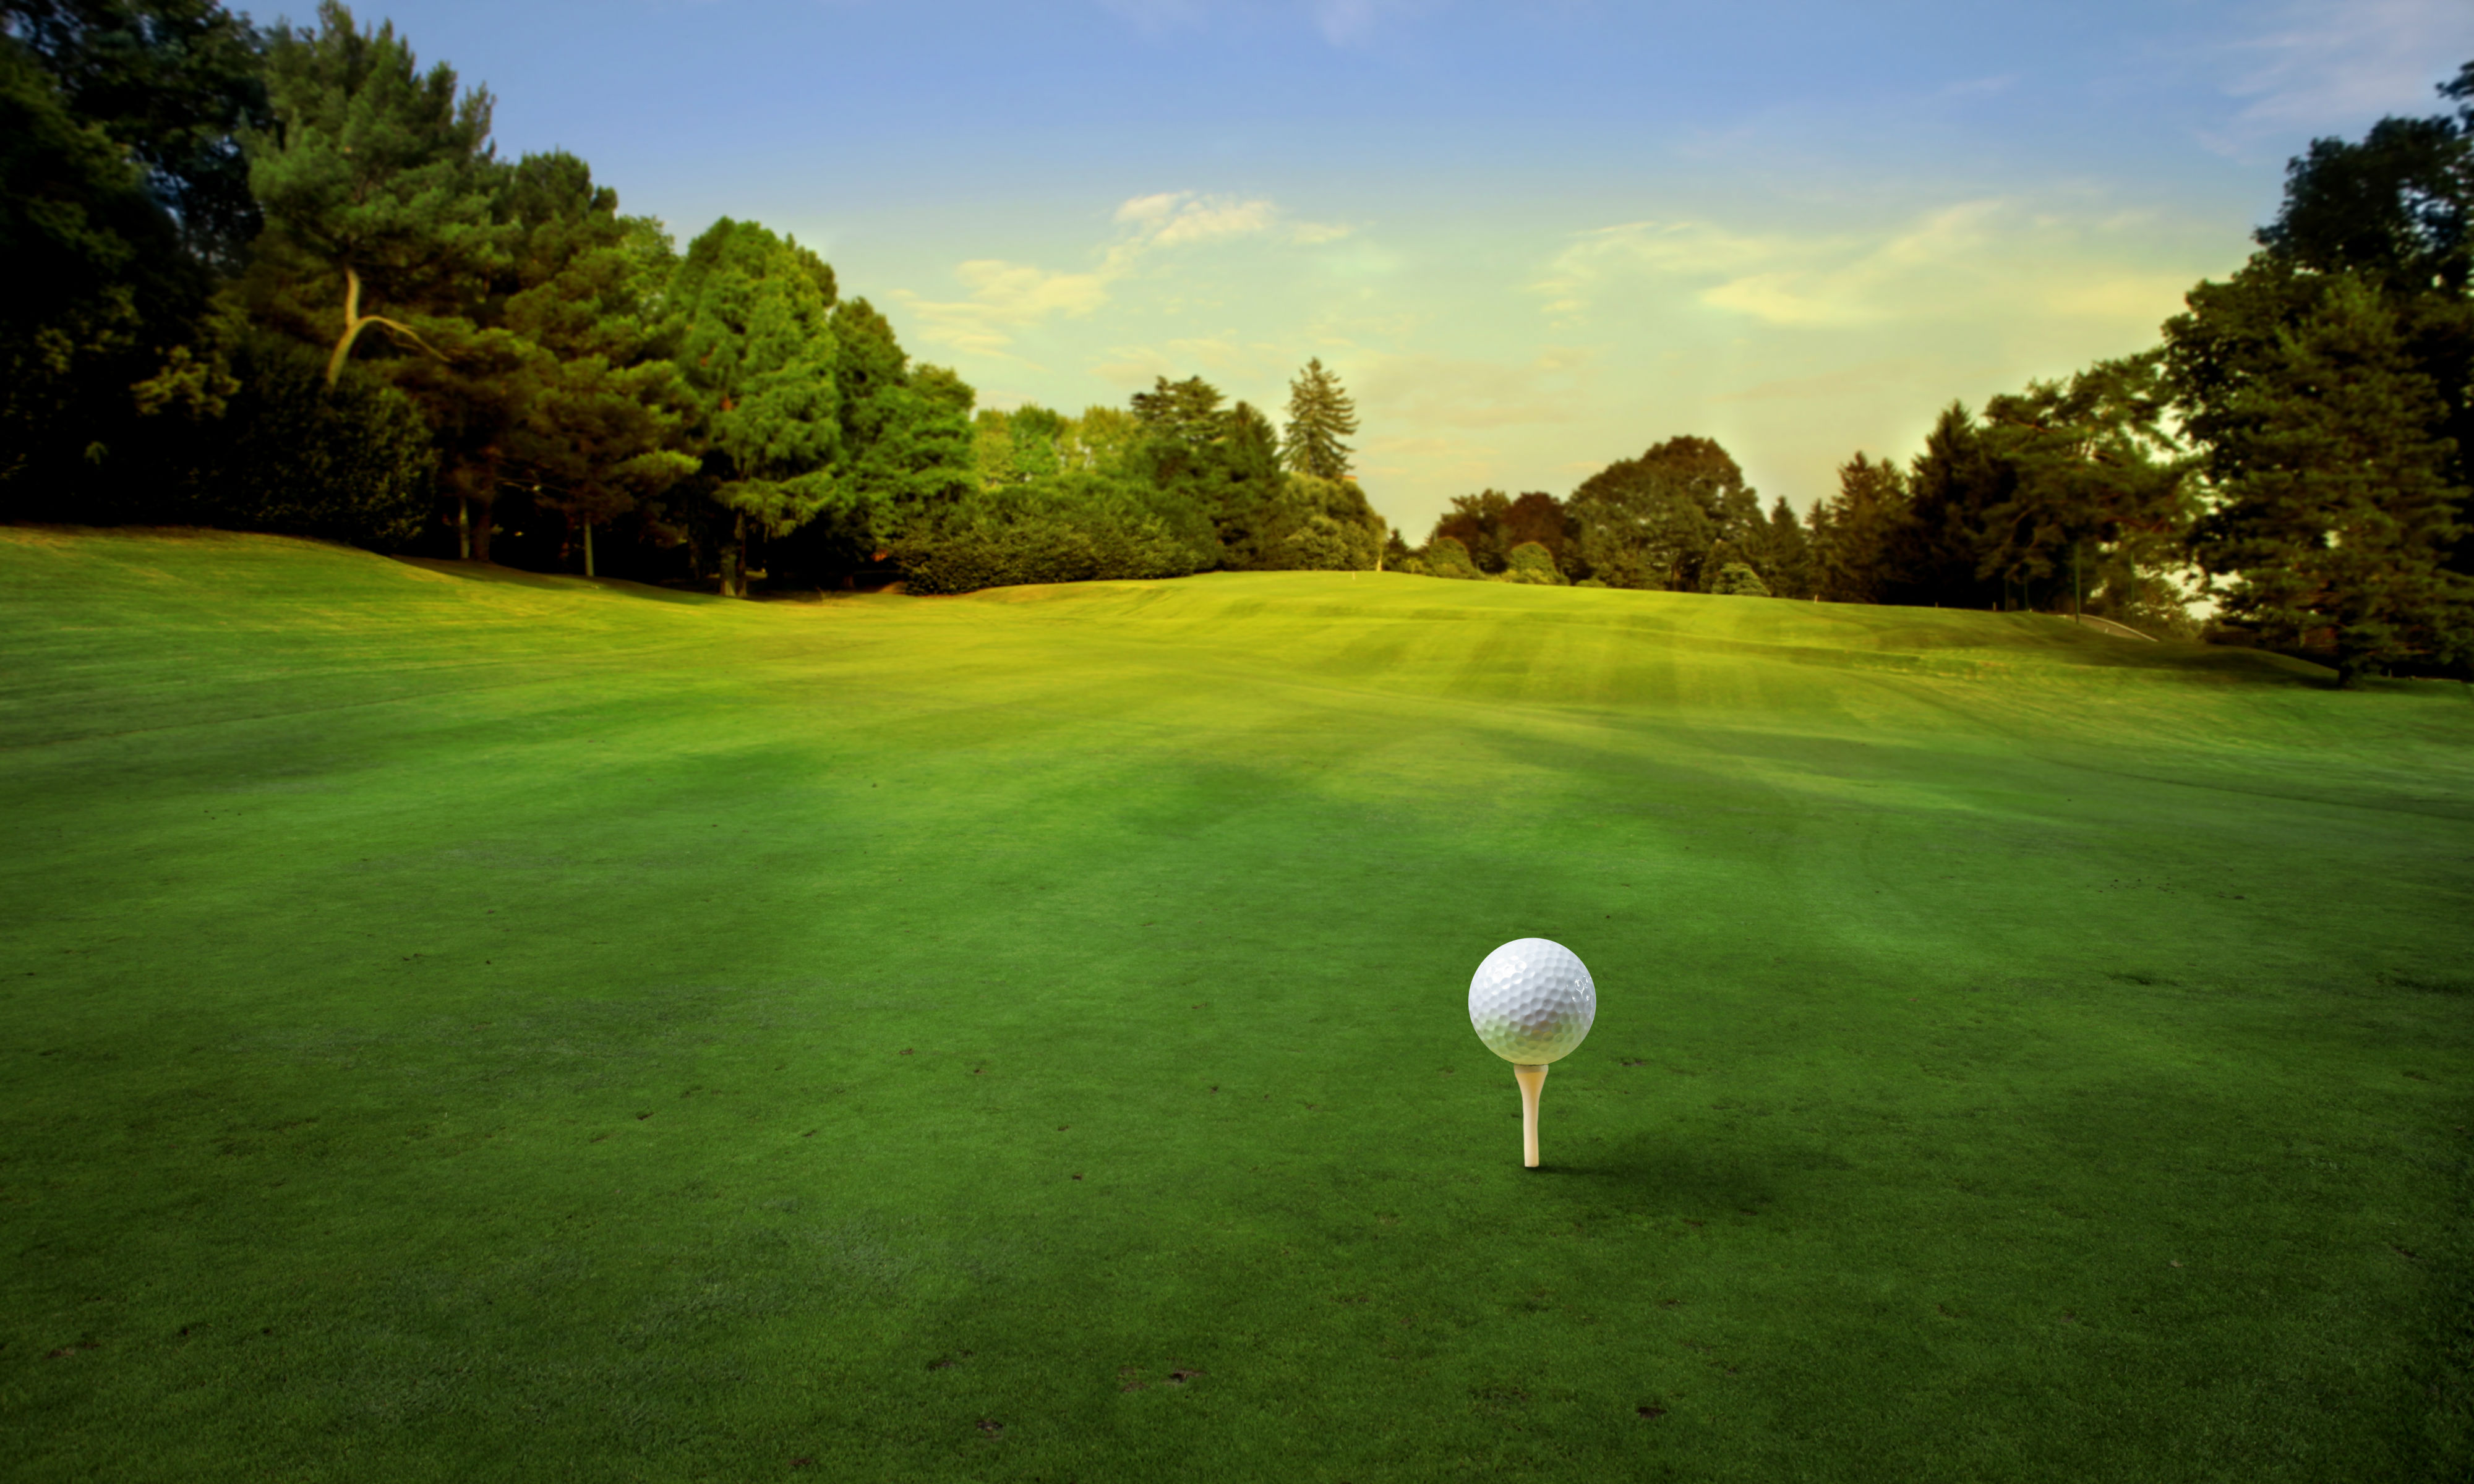 Golf-Course-Fairway